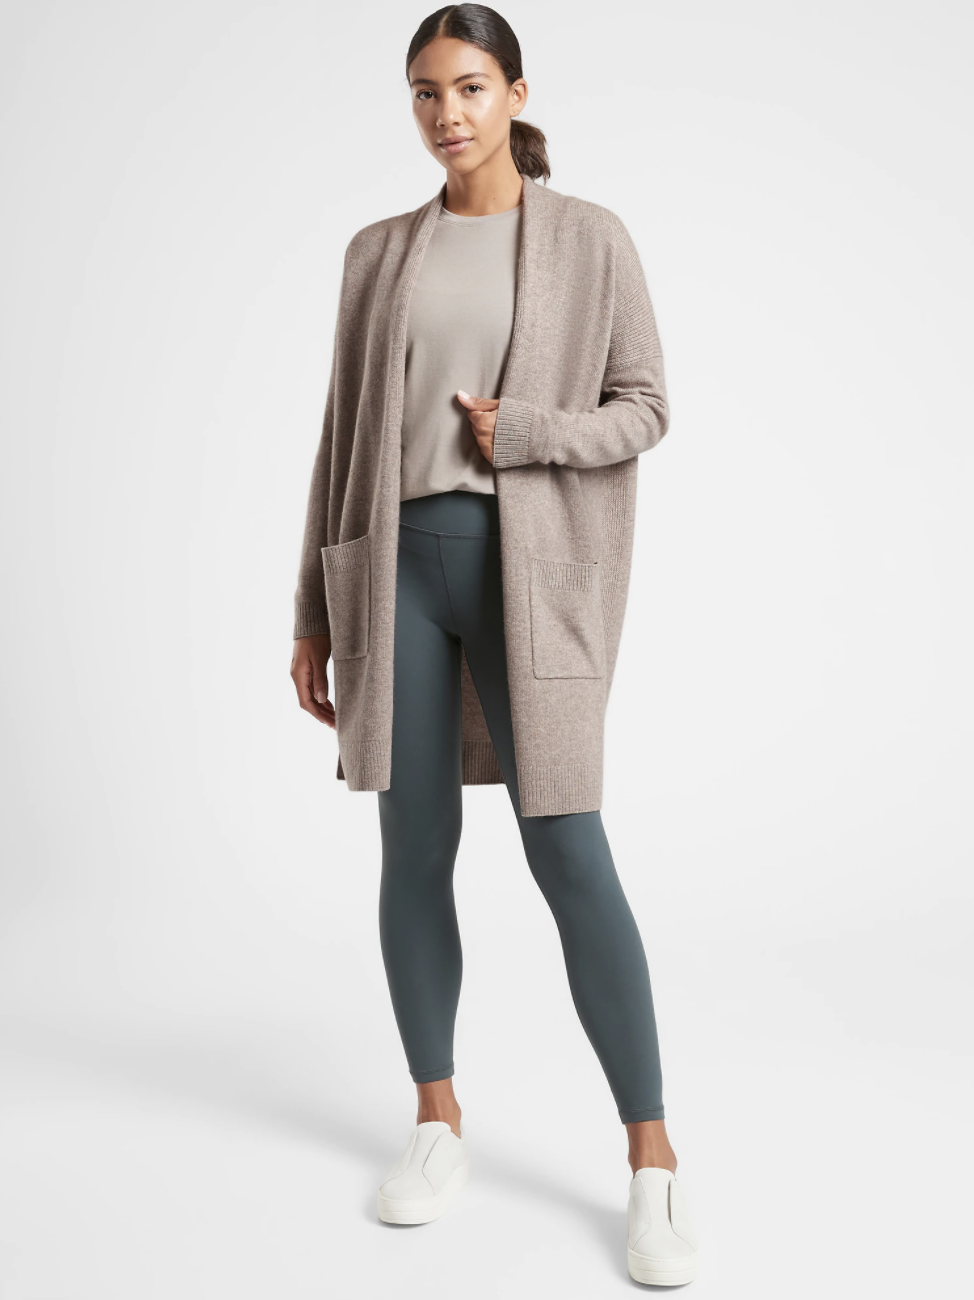 Athleta Spirit Wool Cashmere Wrap